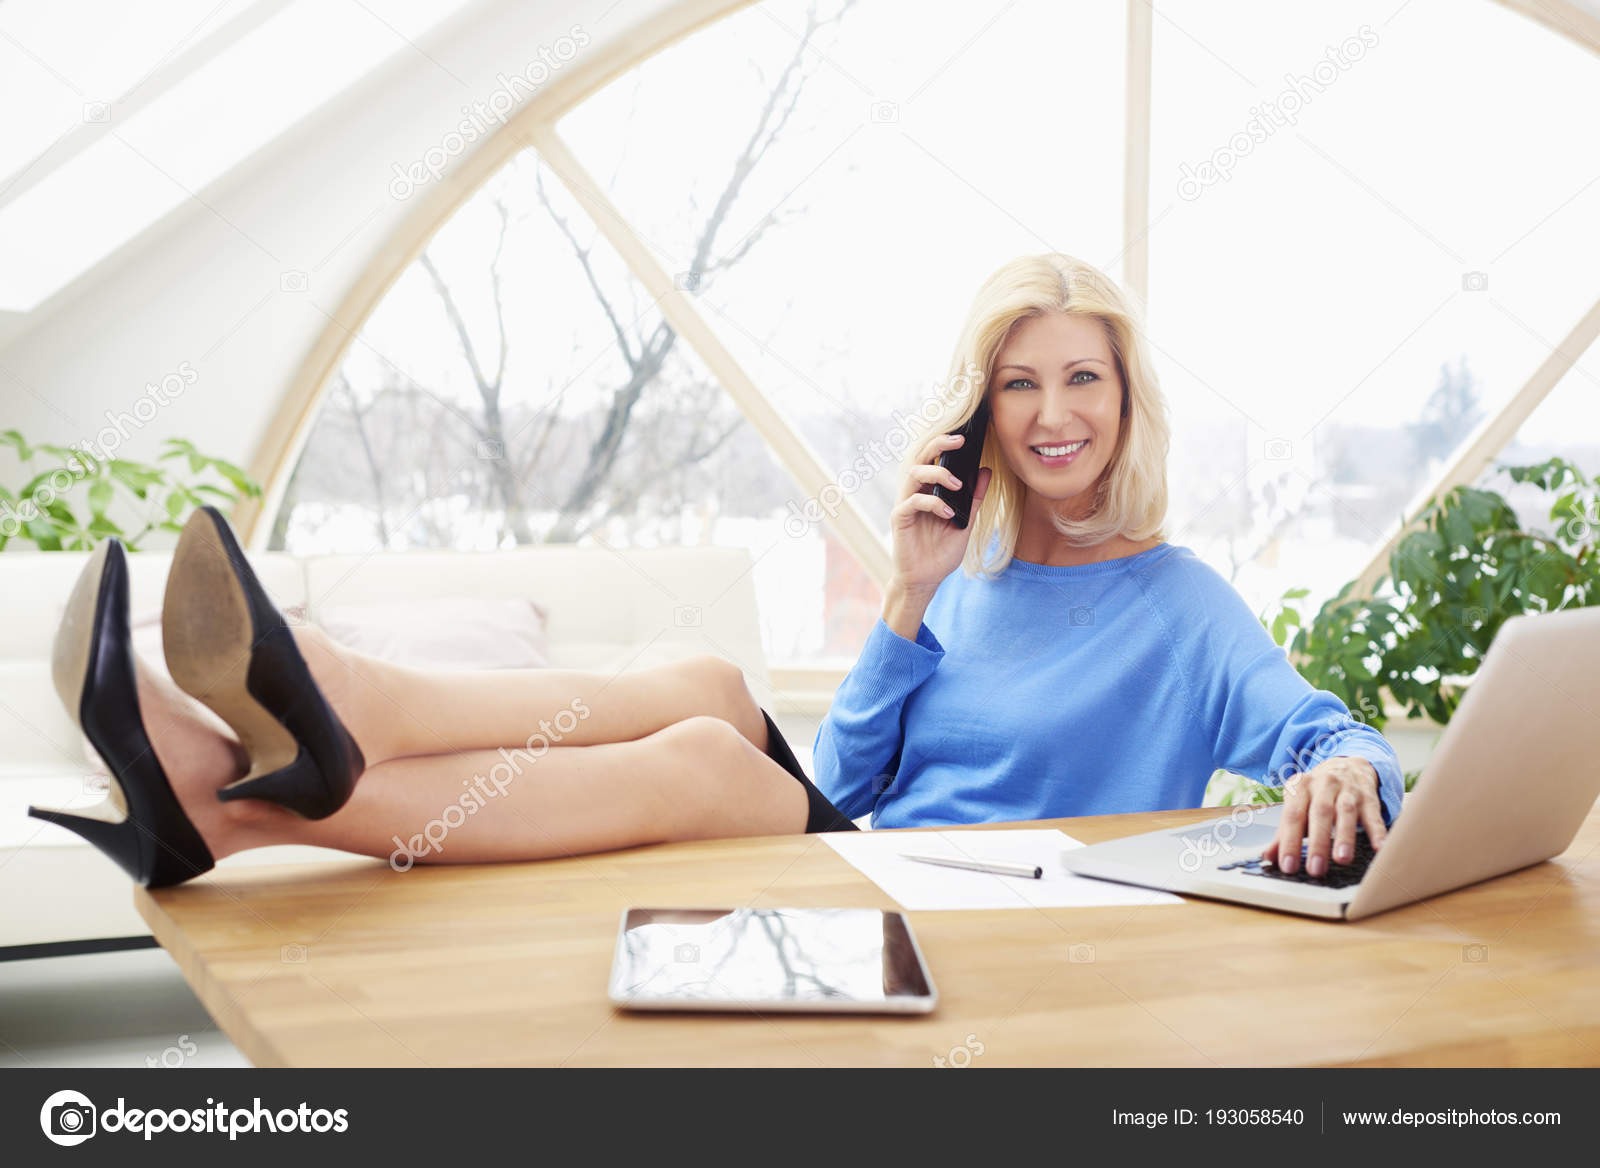 sales working home office. Full Length Shot Of A Middle Aged Blond Sales Woman Sitting With Legs On Office Desk And Talking Somebody Mobile Phone While Working Laptop. Home